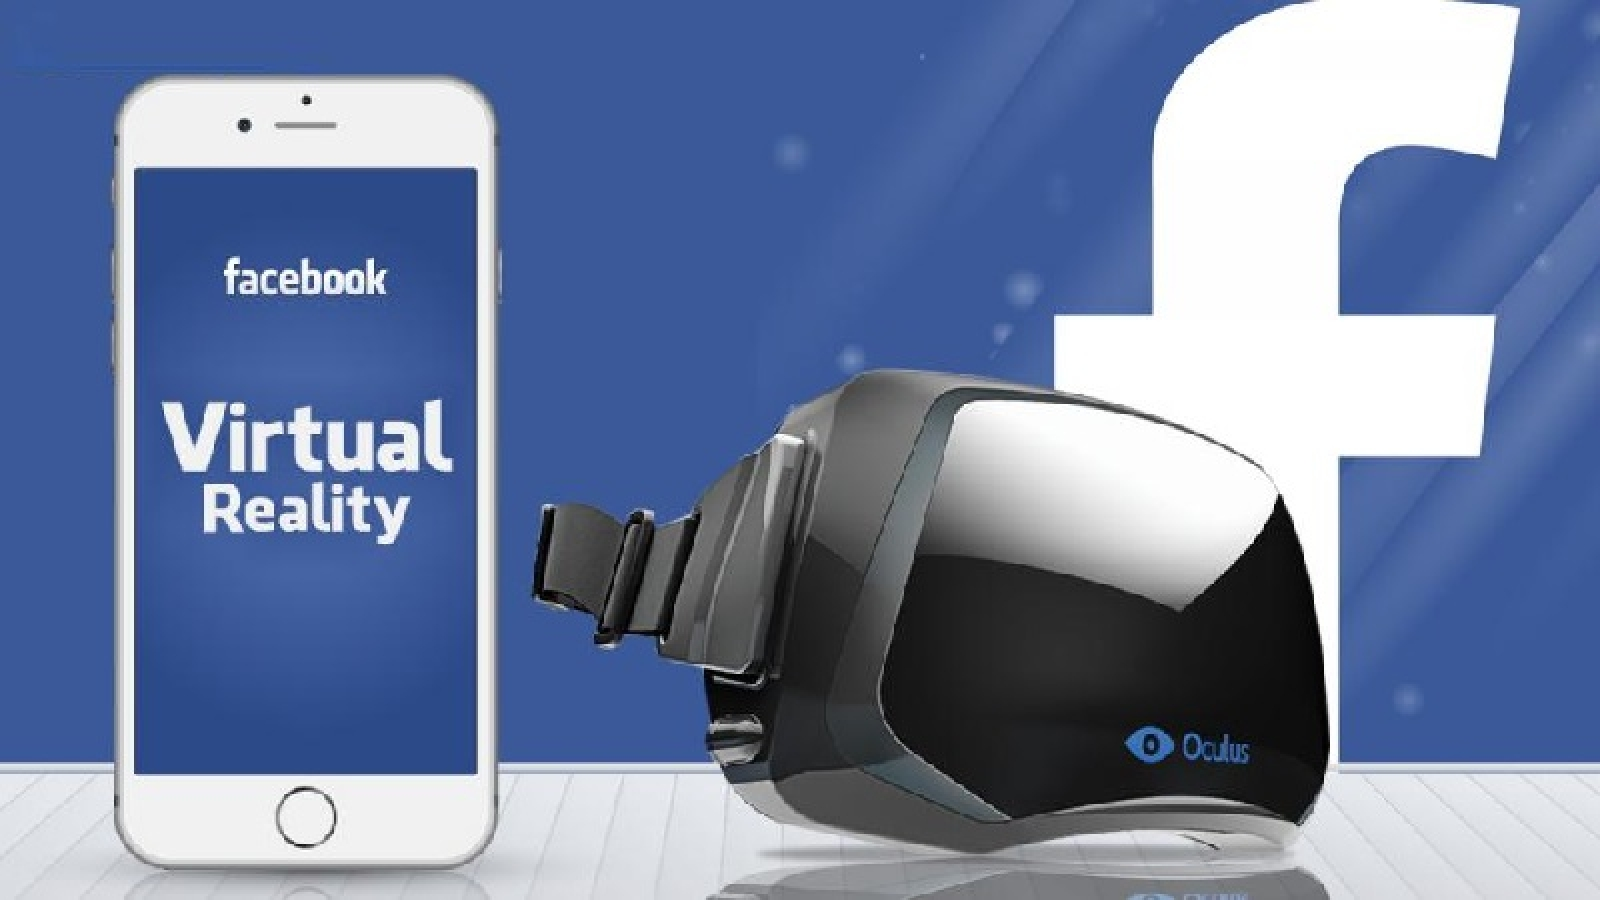 Virtual reality of Facebook